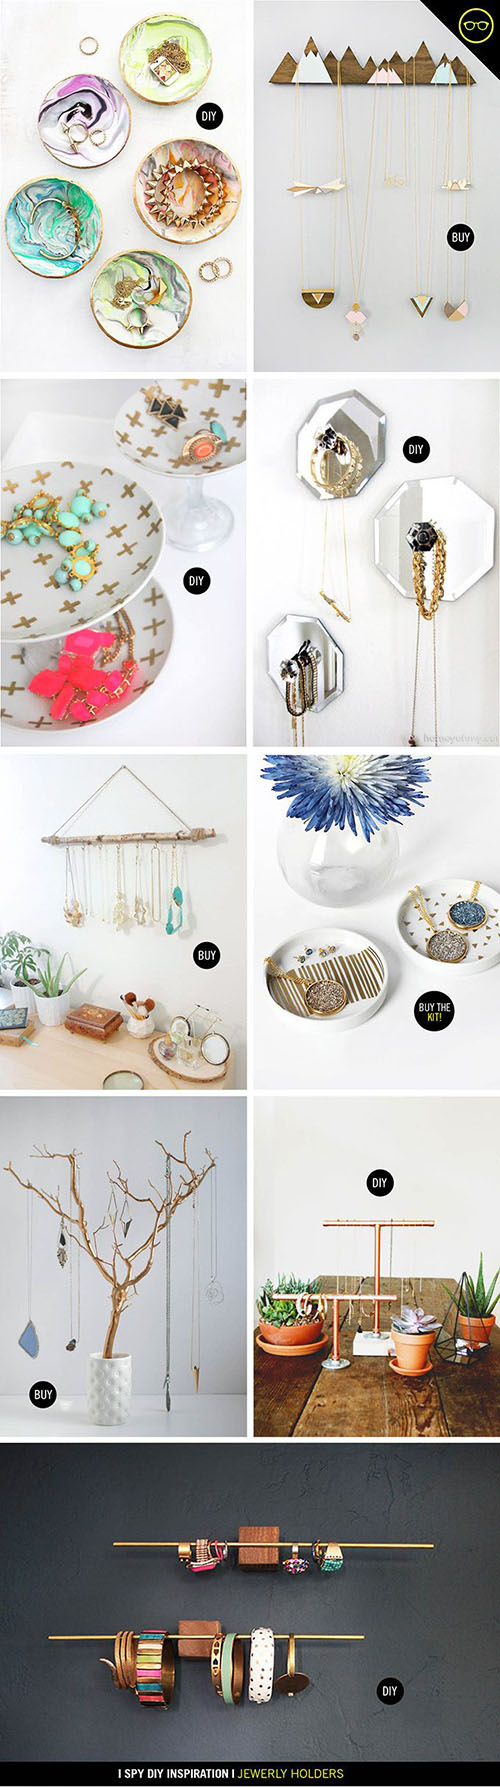 14  Jewellery Holders DIY4b3b53